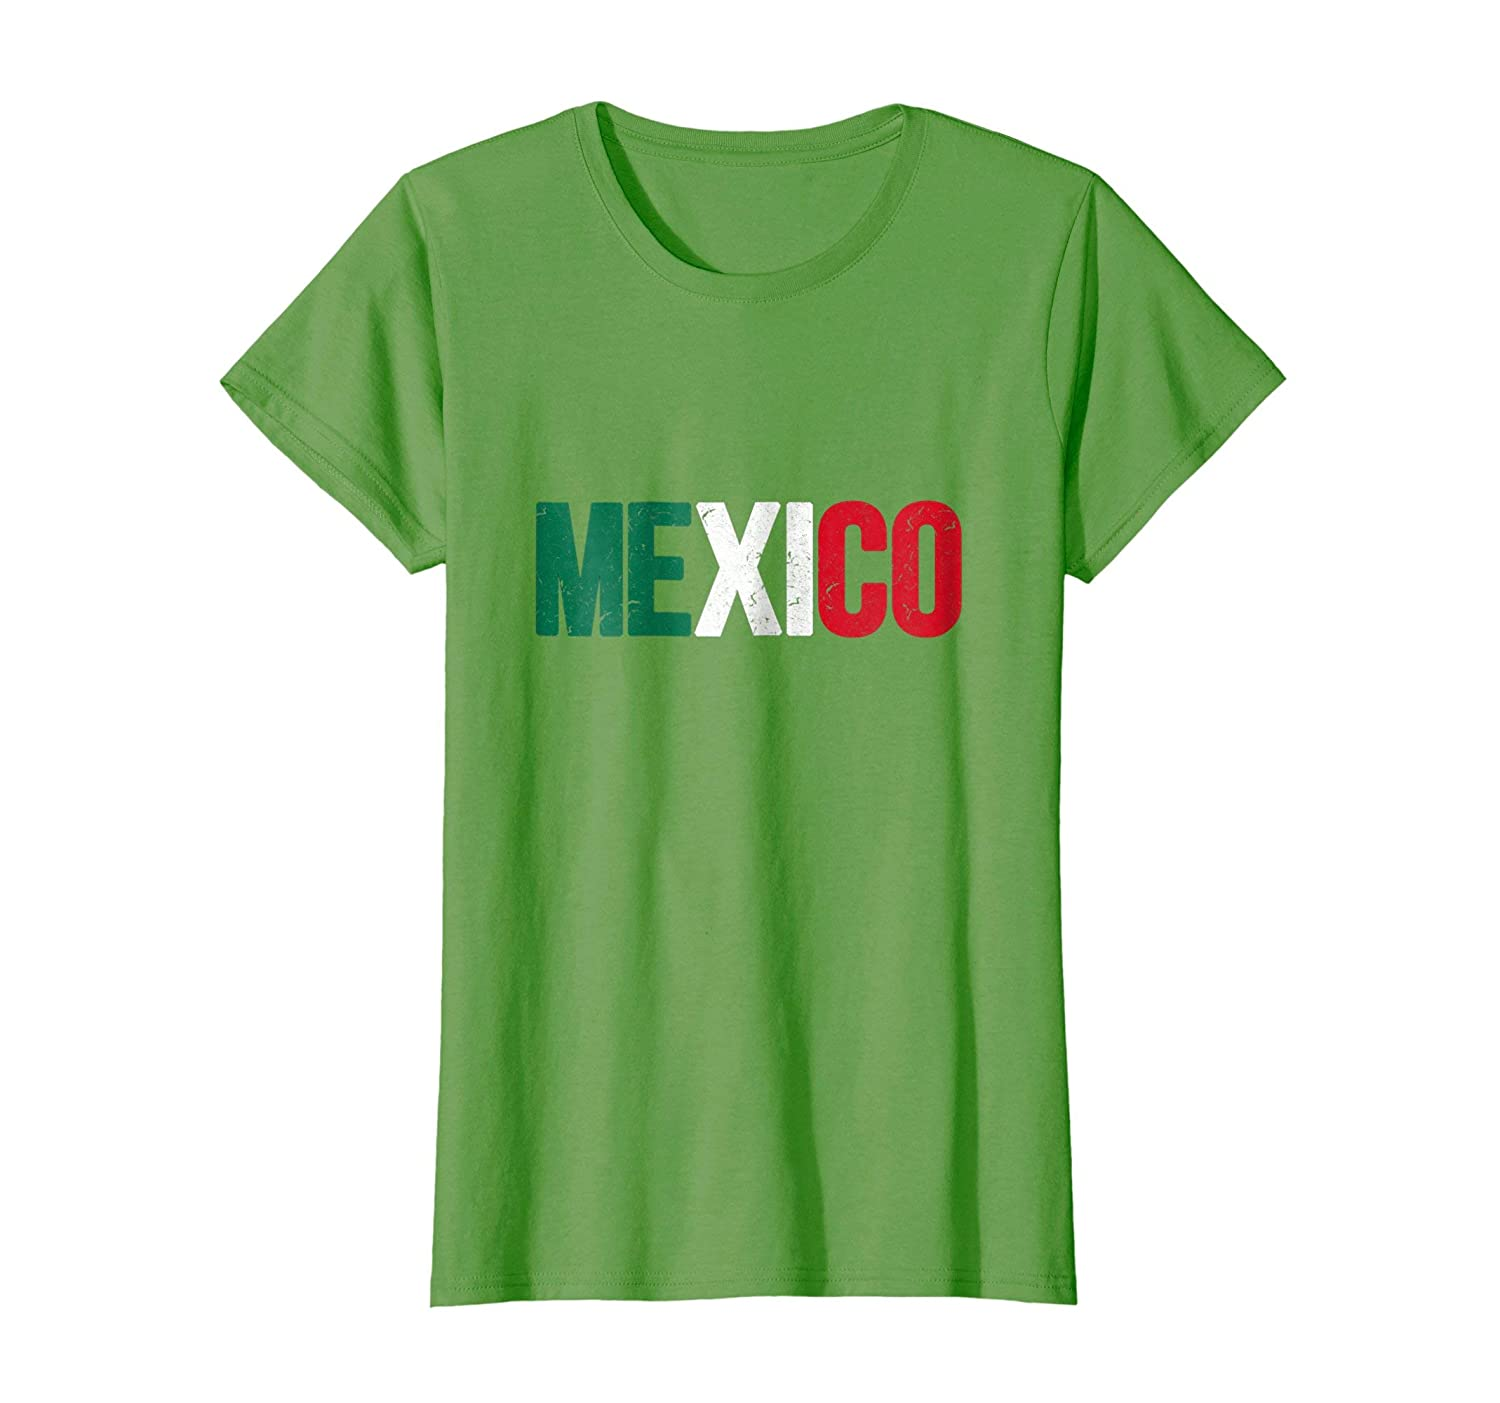 Amazon.com: Mexico T-shirt Mexican Flag Soccer Football Fan Jersey: Clothing